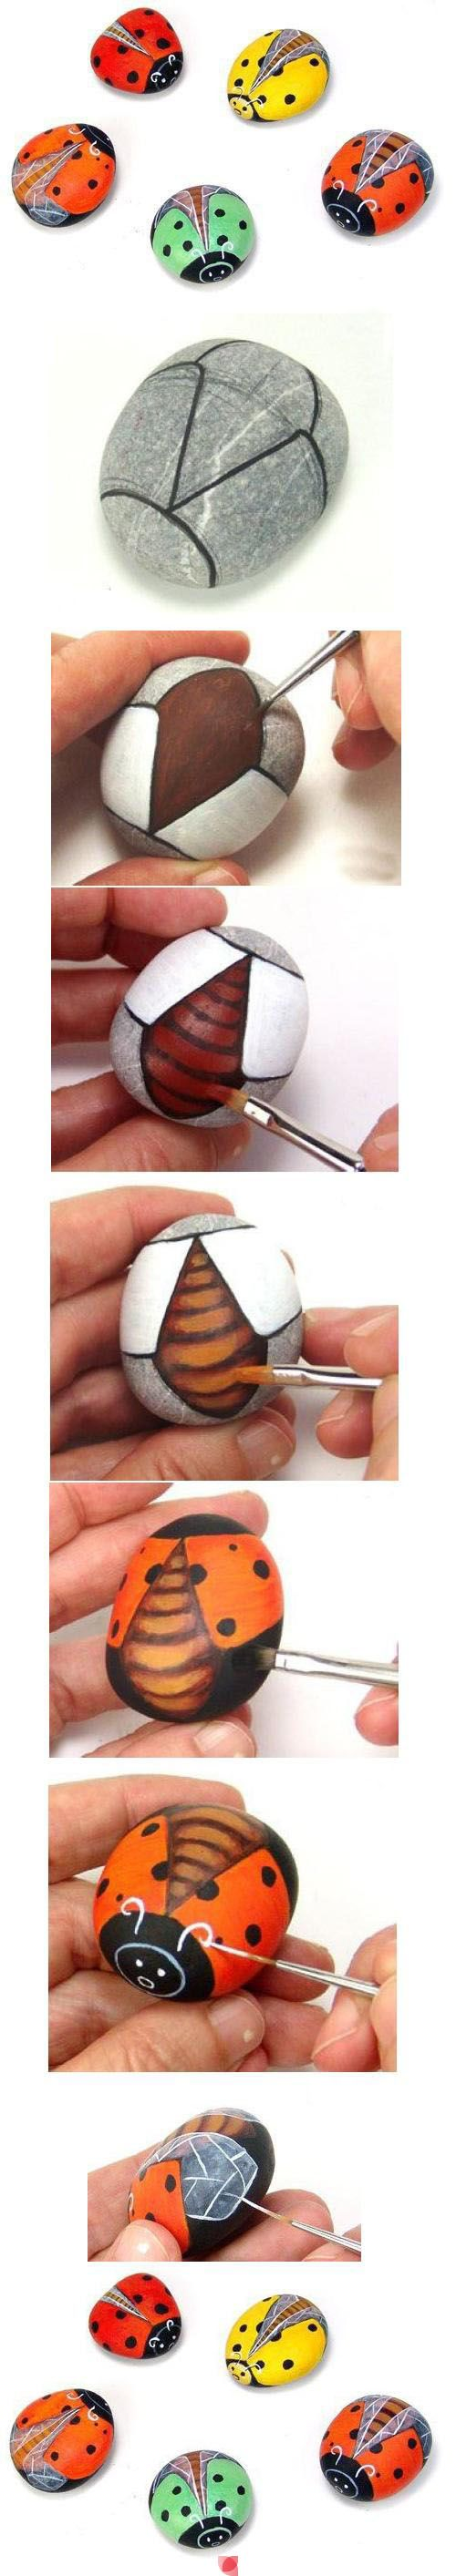 How to paint bugs